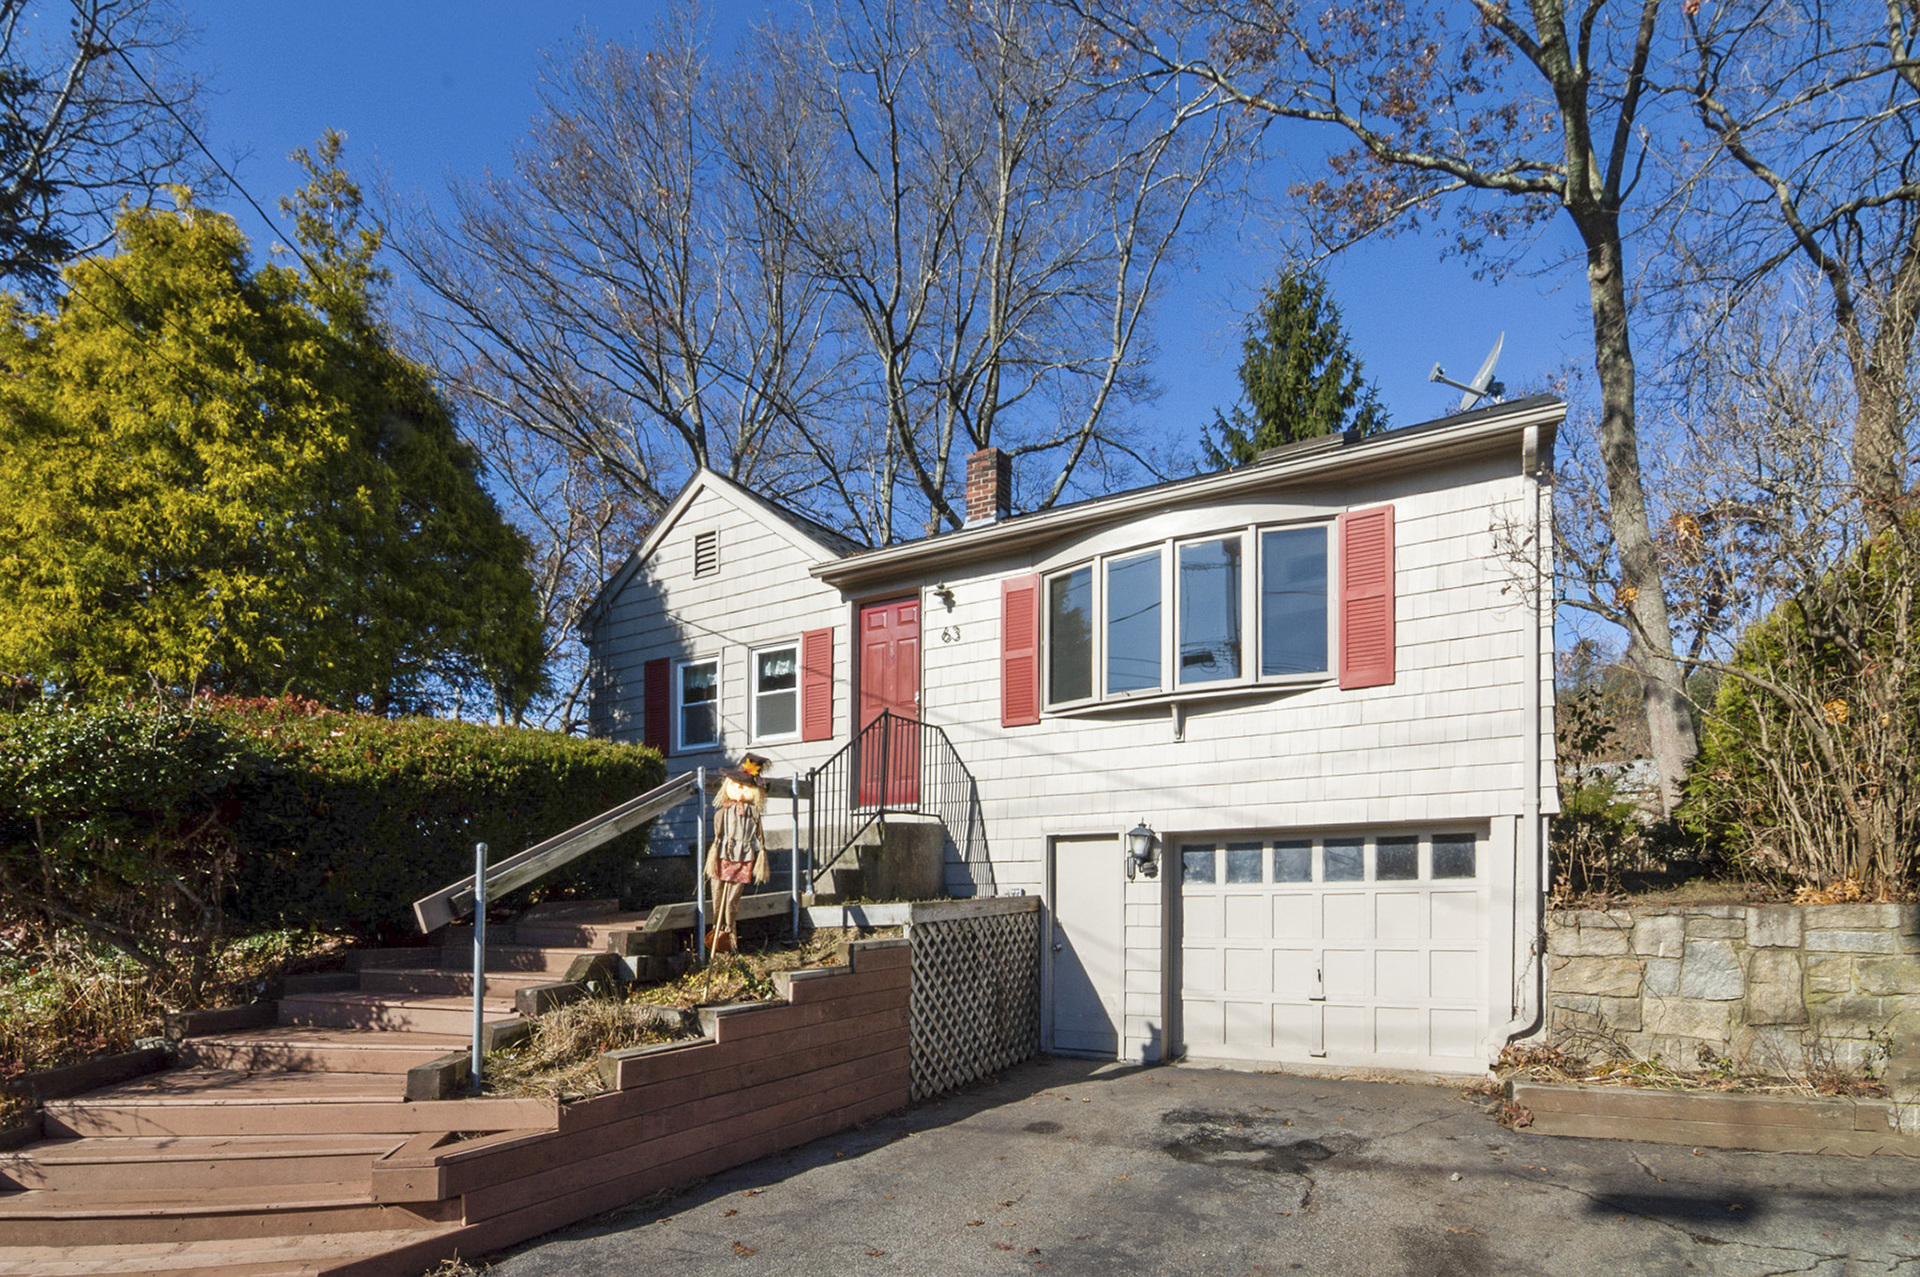 63 Twin Lakes Ave, Coventry, RI | Sun 11/24 from 11:00 - 12:30pm